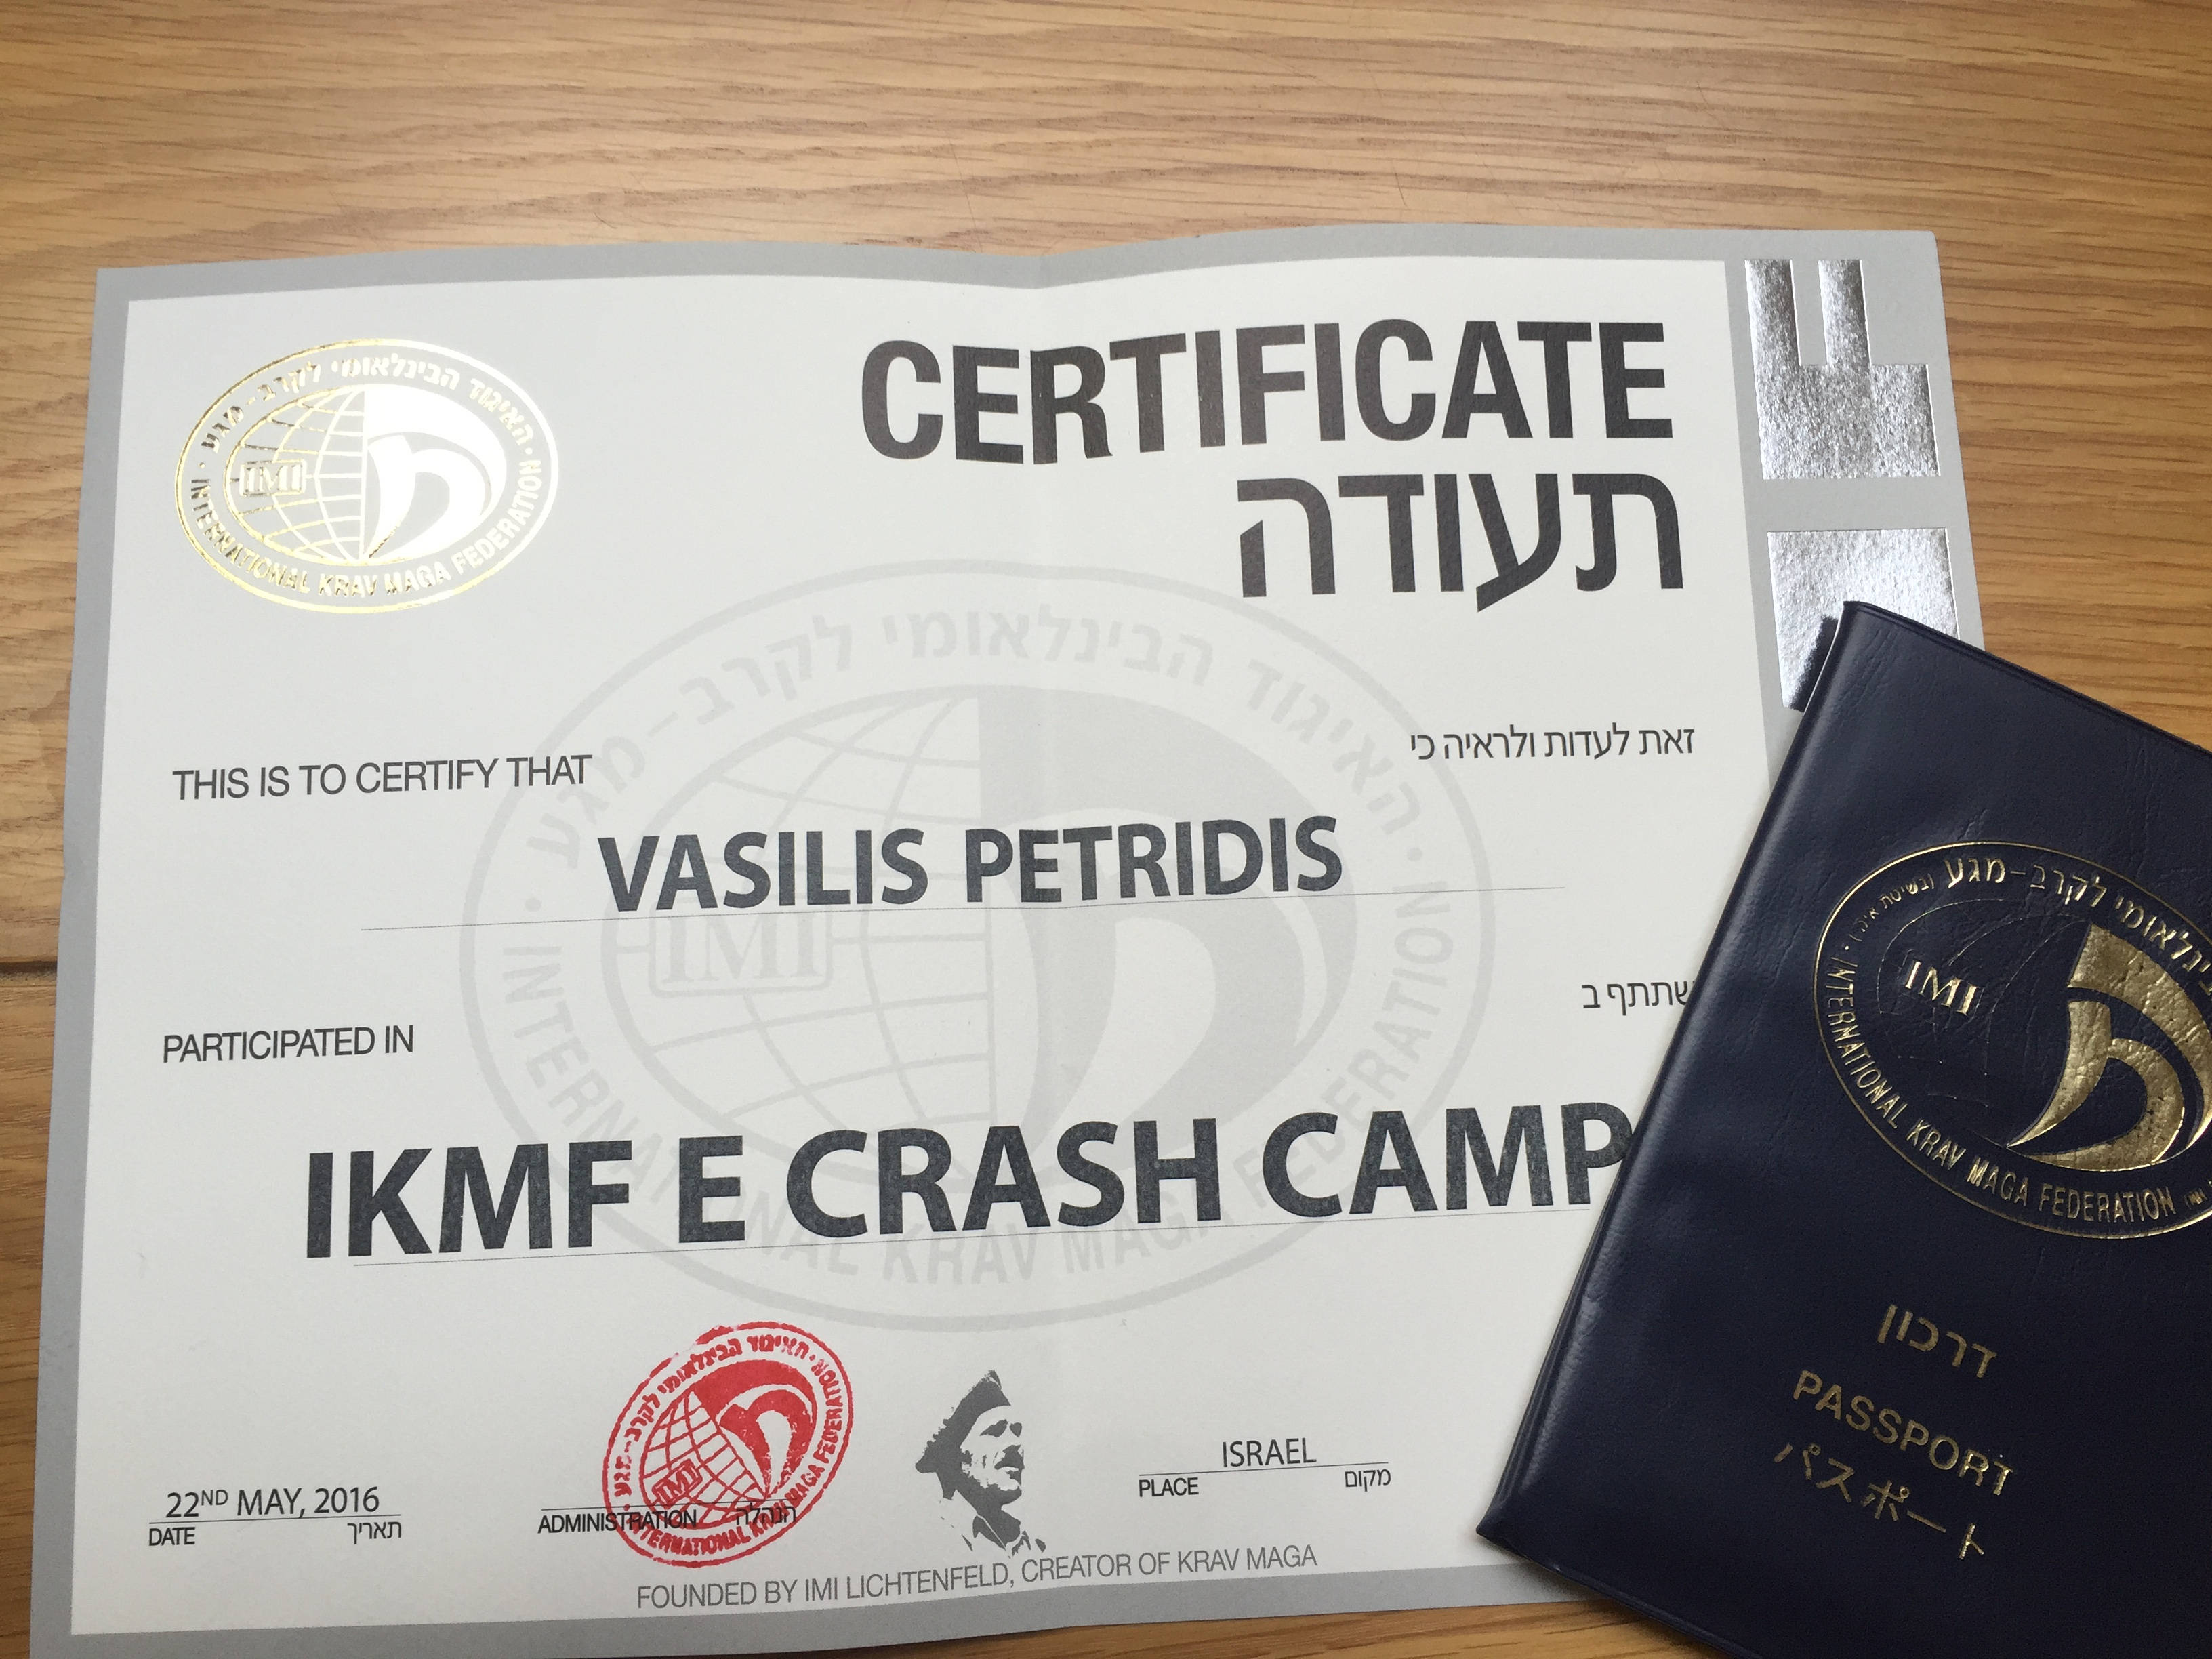 Israel Expert Crash Camp 2016